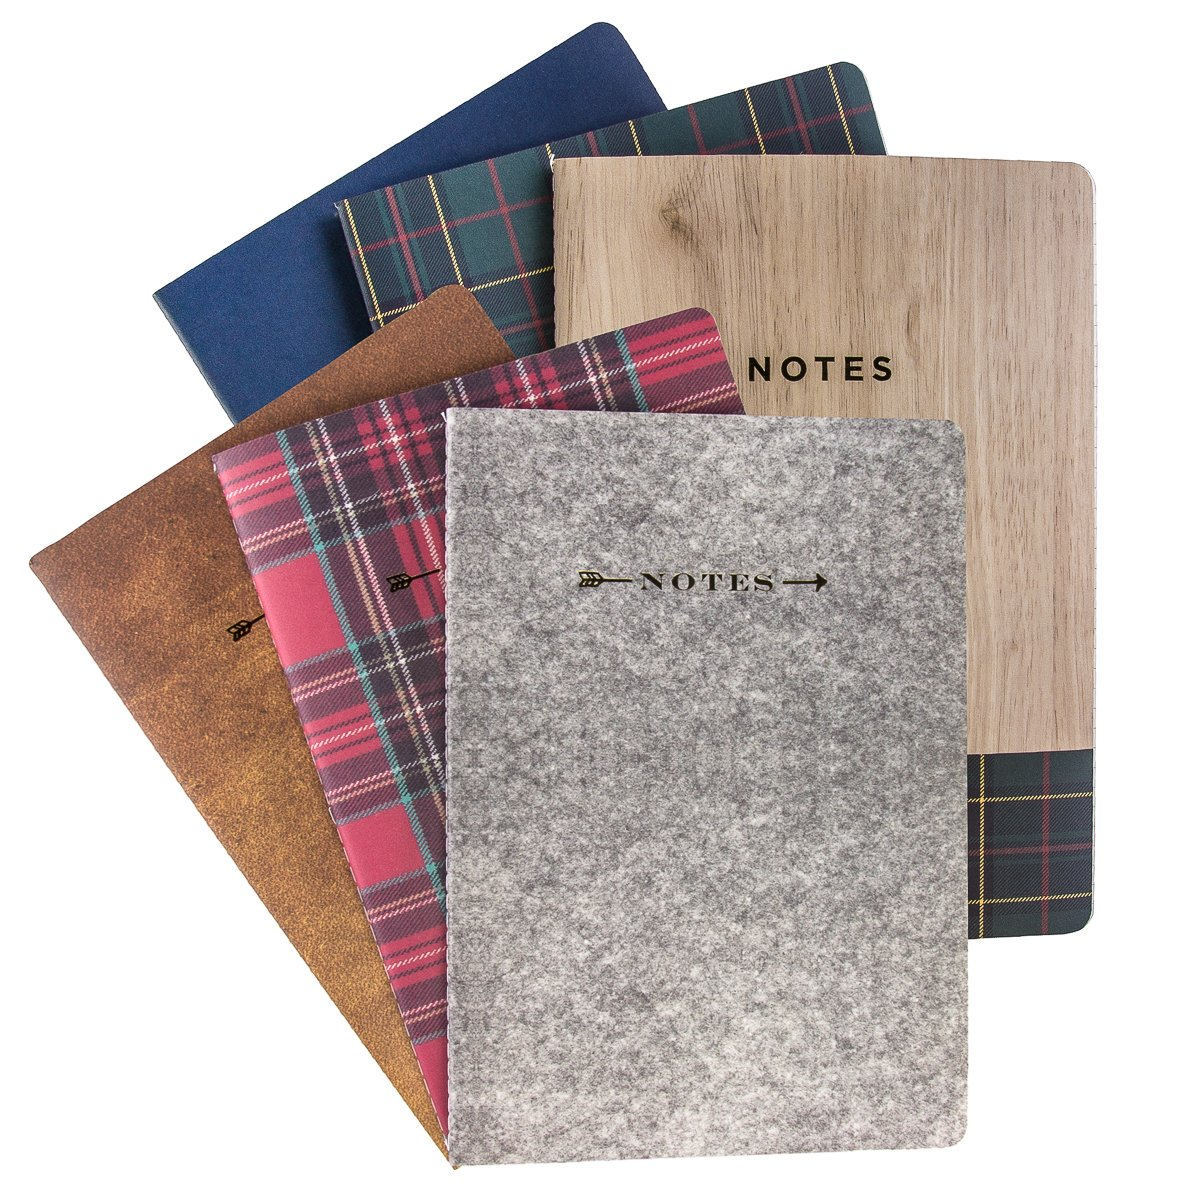 "George Stanley (6 Pack) Notebooks and Journals, Journals To Write In 10 x 7"" Notebook Soft Cover Ruled 120 Lined Pages Bulk"